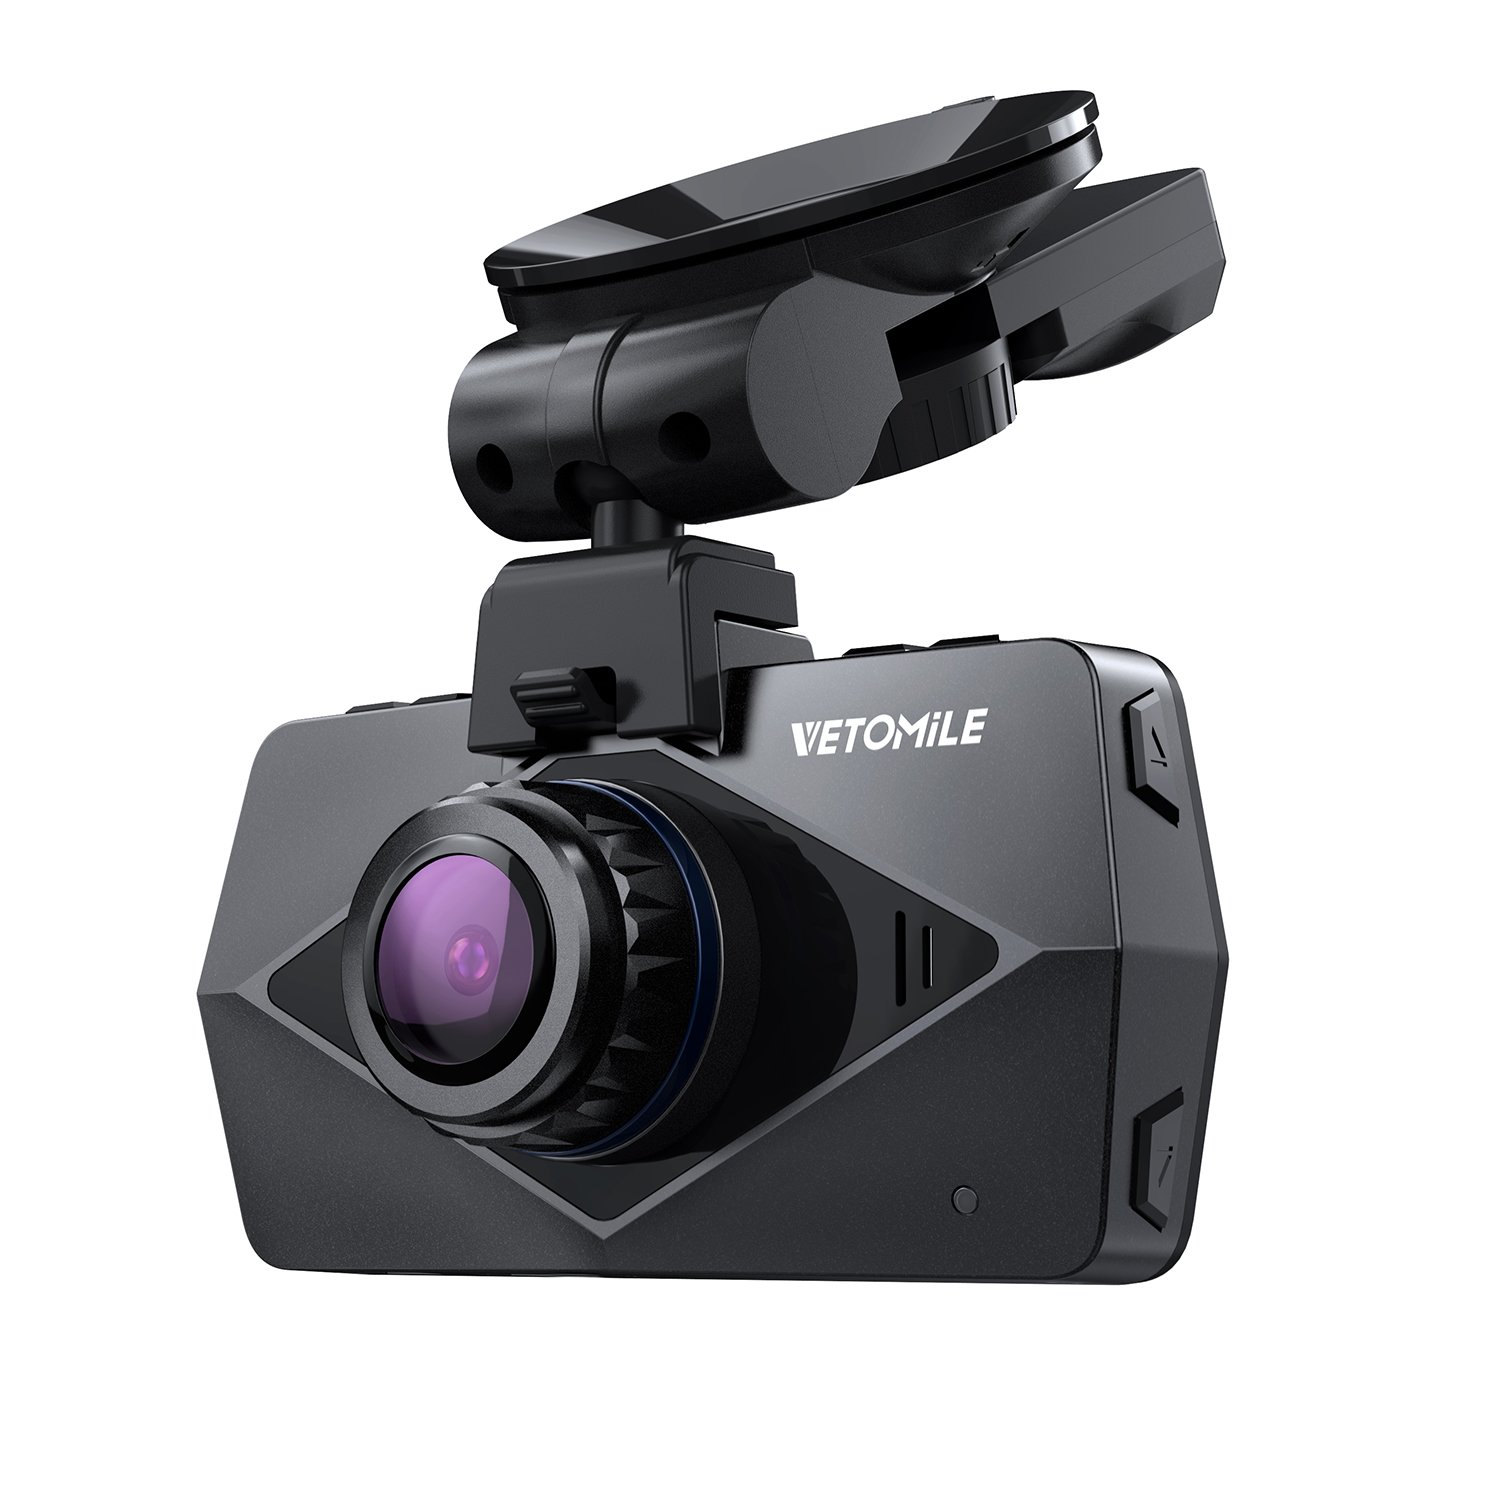 VETOMILE V2 Dash Cam 2.5K HD 1440P 30fps, 1080P 60fps, Car Dashboard Camera Video Recorder 170° Wide Angle with Built-in WIFI, GPS, Parking Mode, Super Night Vision, Loop Recording